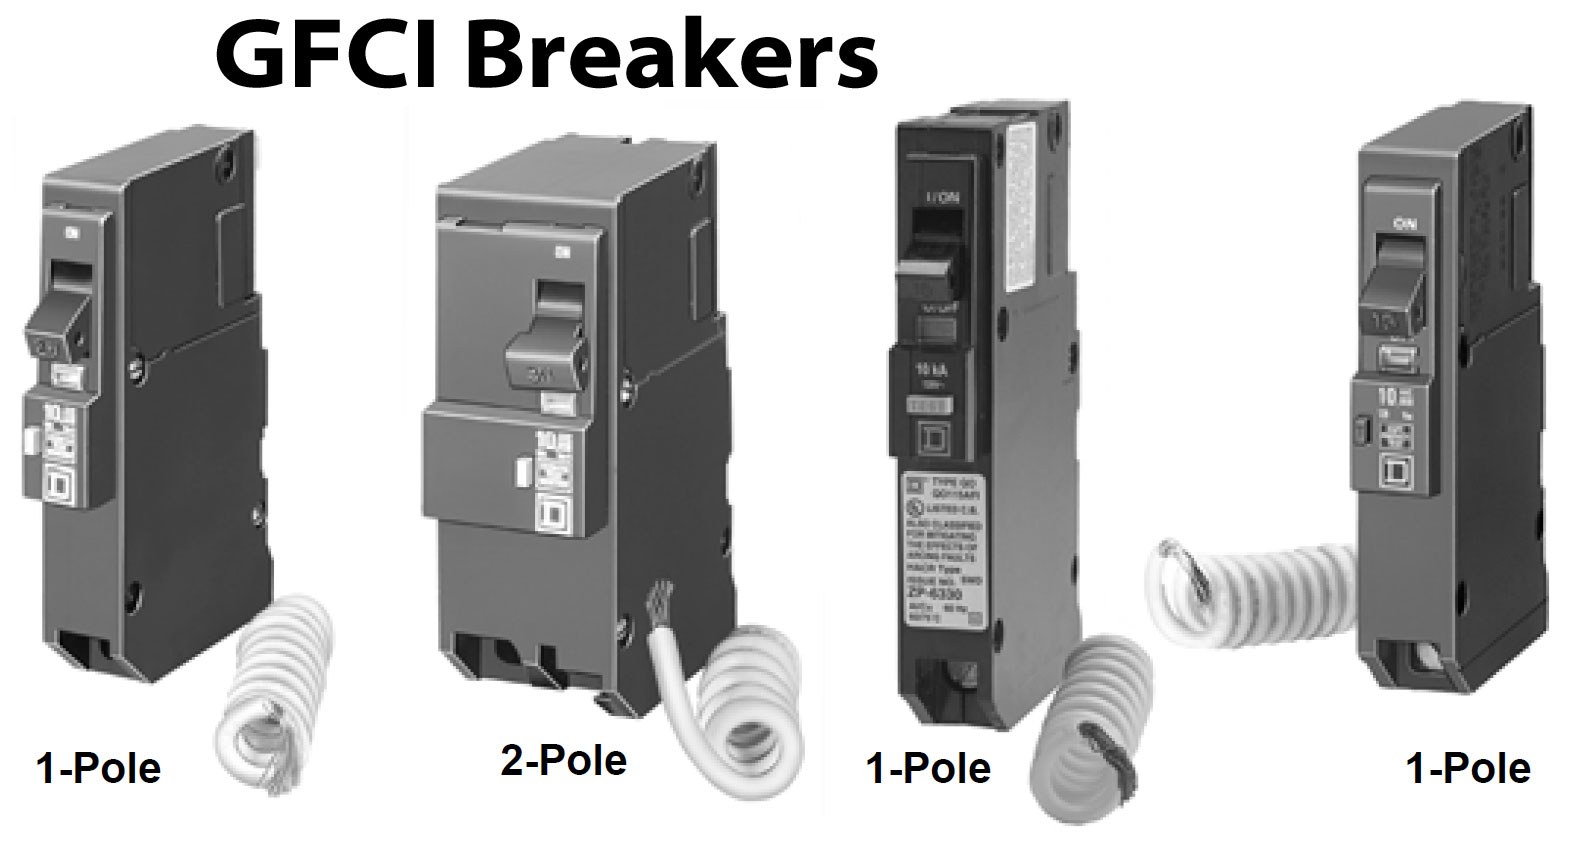 GFCI breakers 1000 how to wire intermatic control centers 240 volt gfci breaker diagram at bakdesigns.co